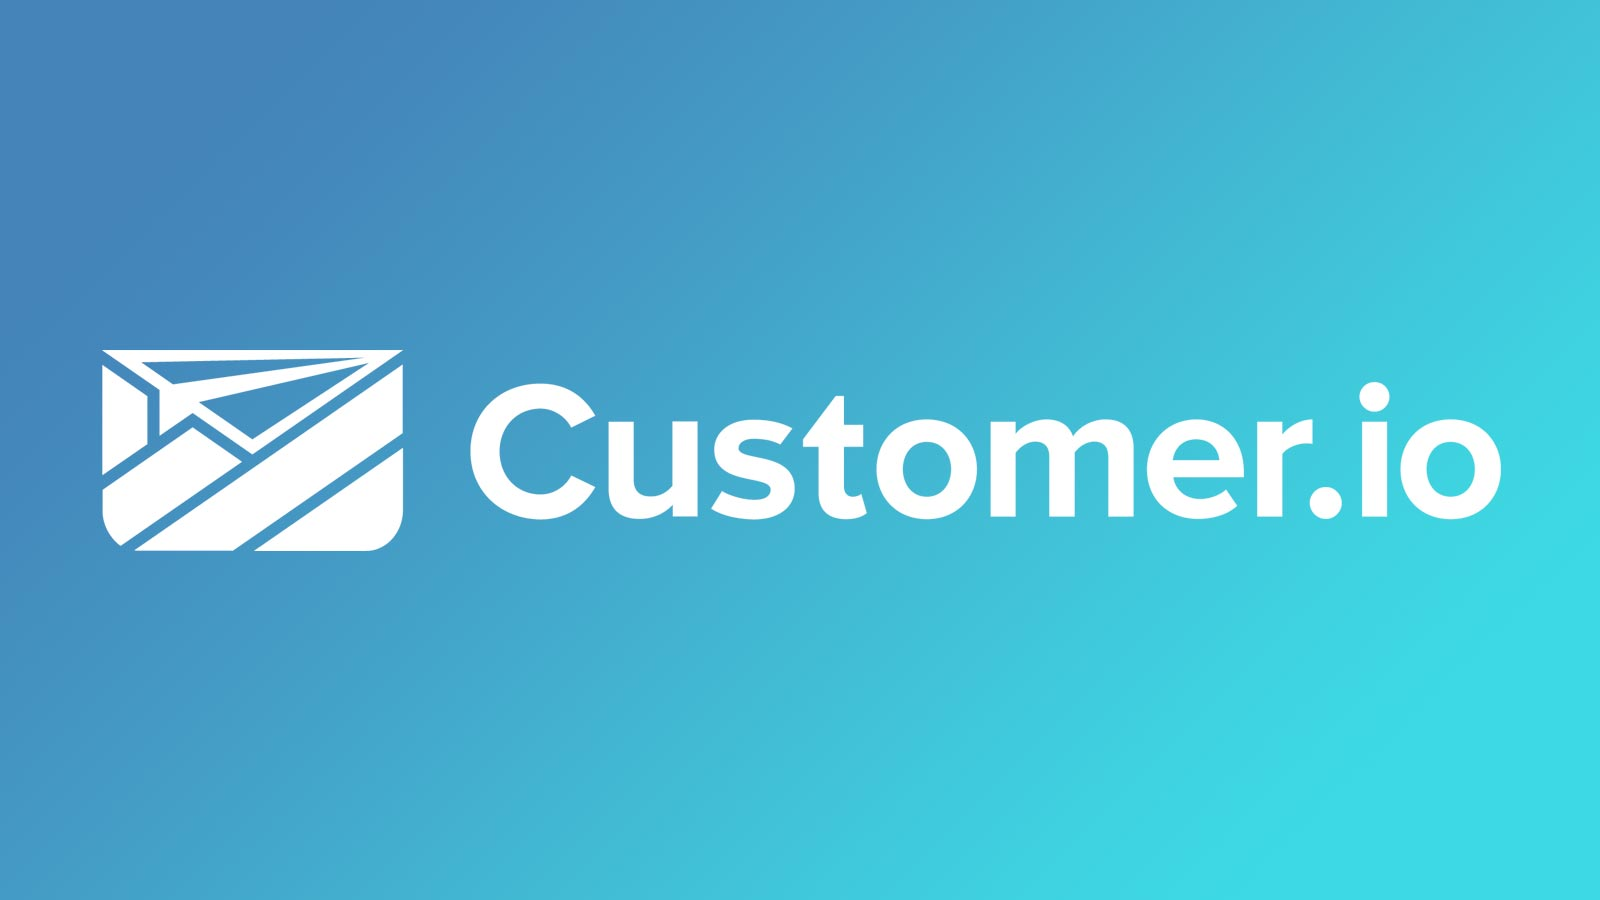 How To Use Custom Html Email Templates With Customer